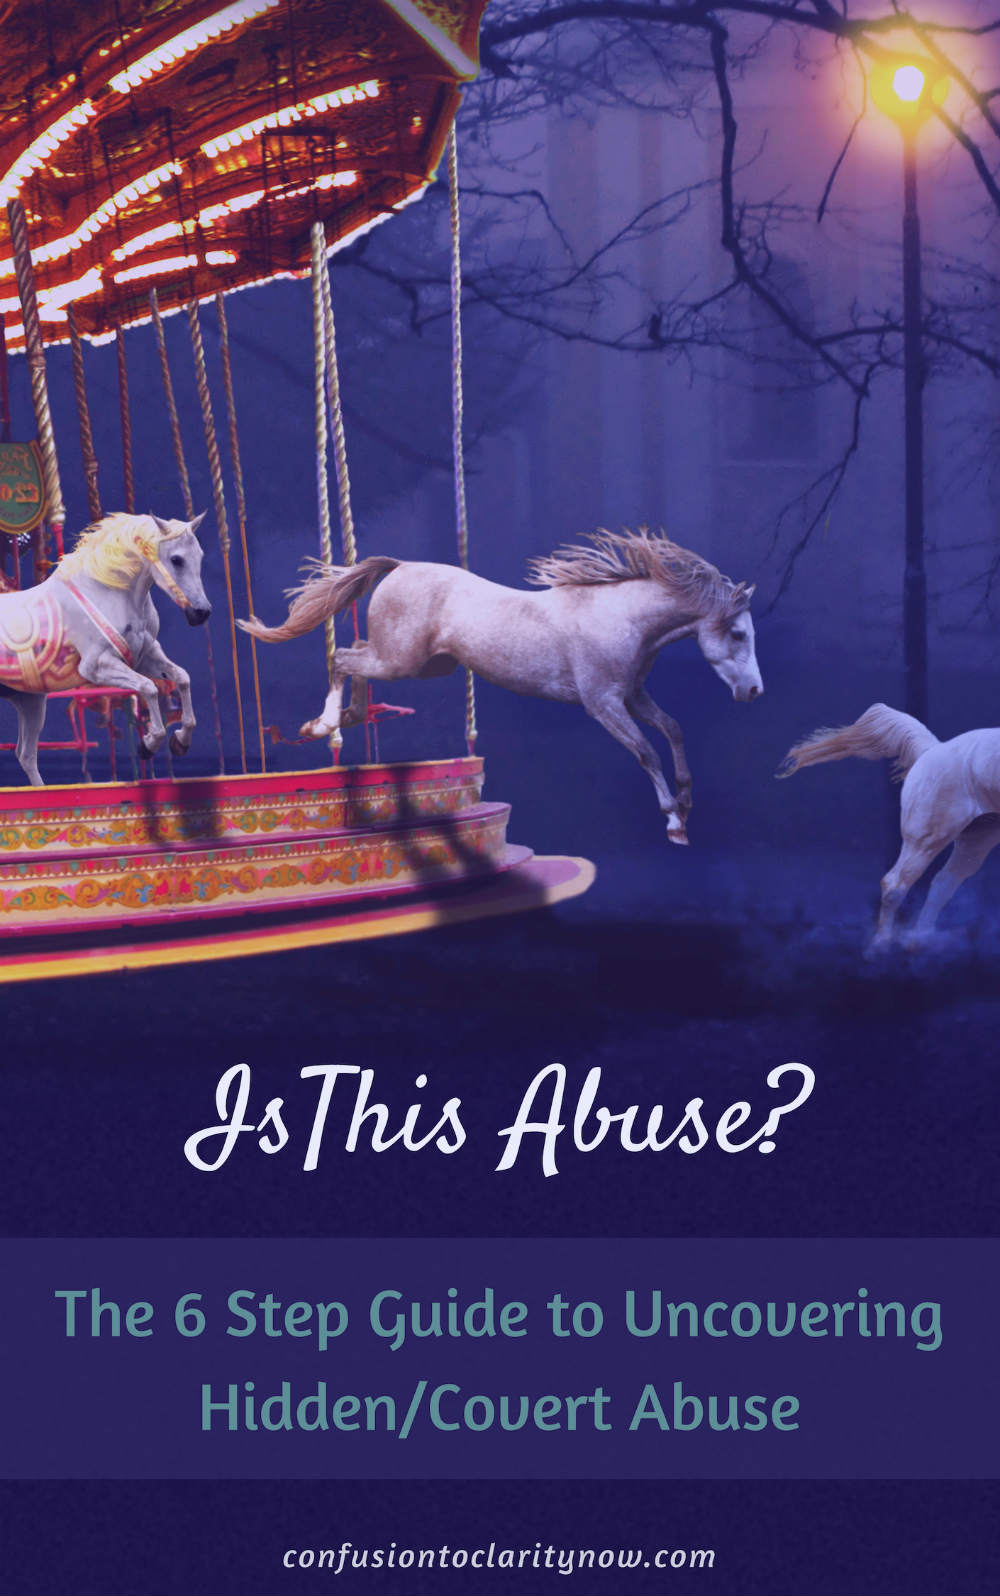 is this abuse-uncovering hidden abuse178.jpg